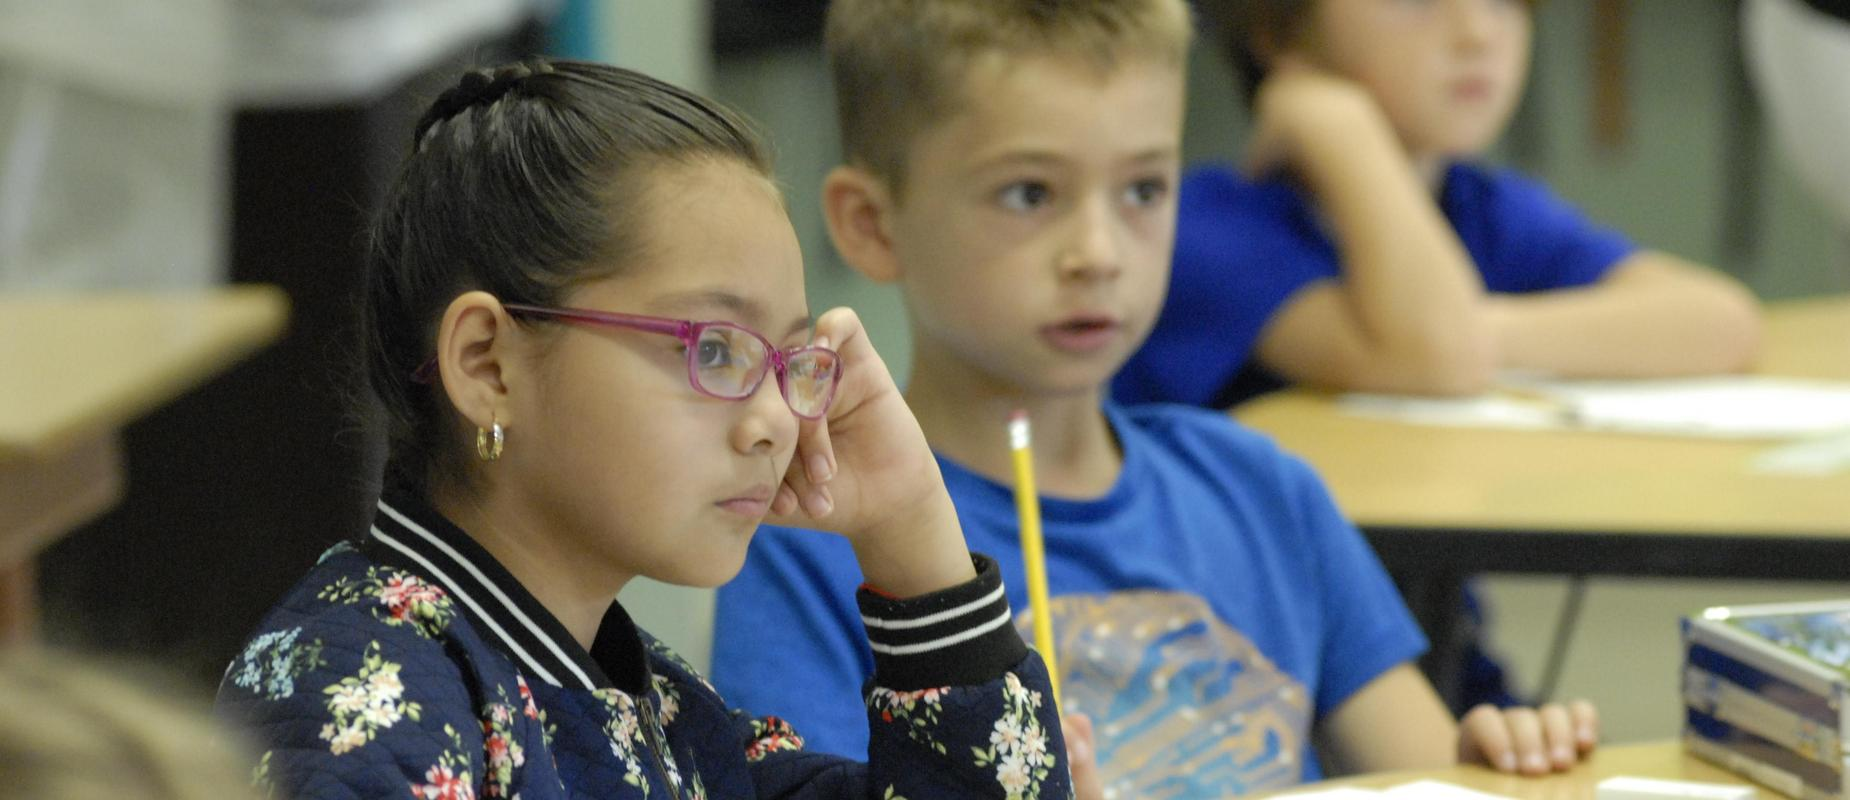 Little children listening to teacher in classroom